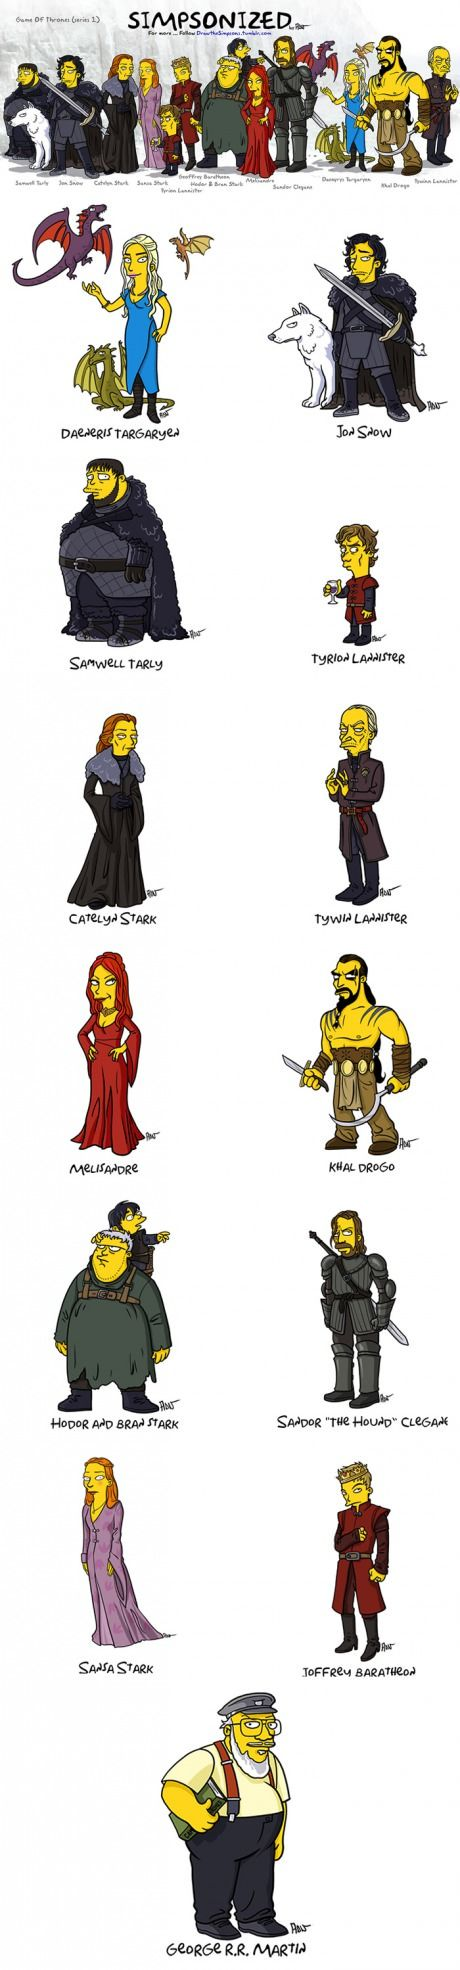 Game of Thrones Simpsonized…                                                                                                                                                                                 Mehr